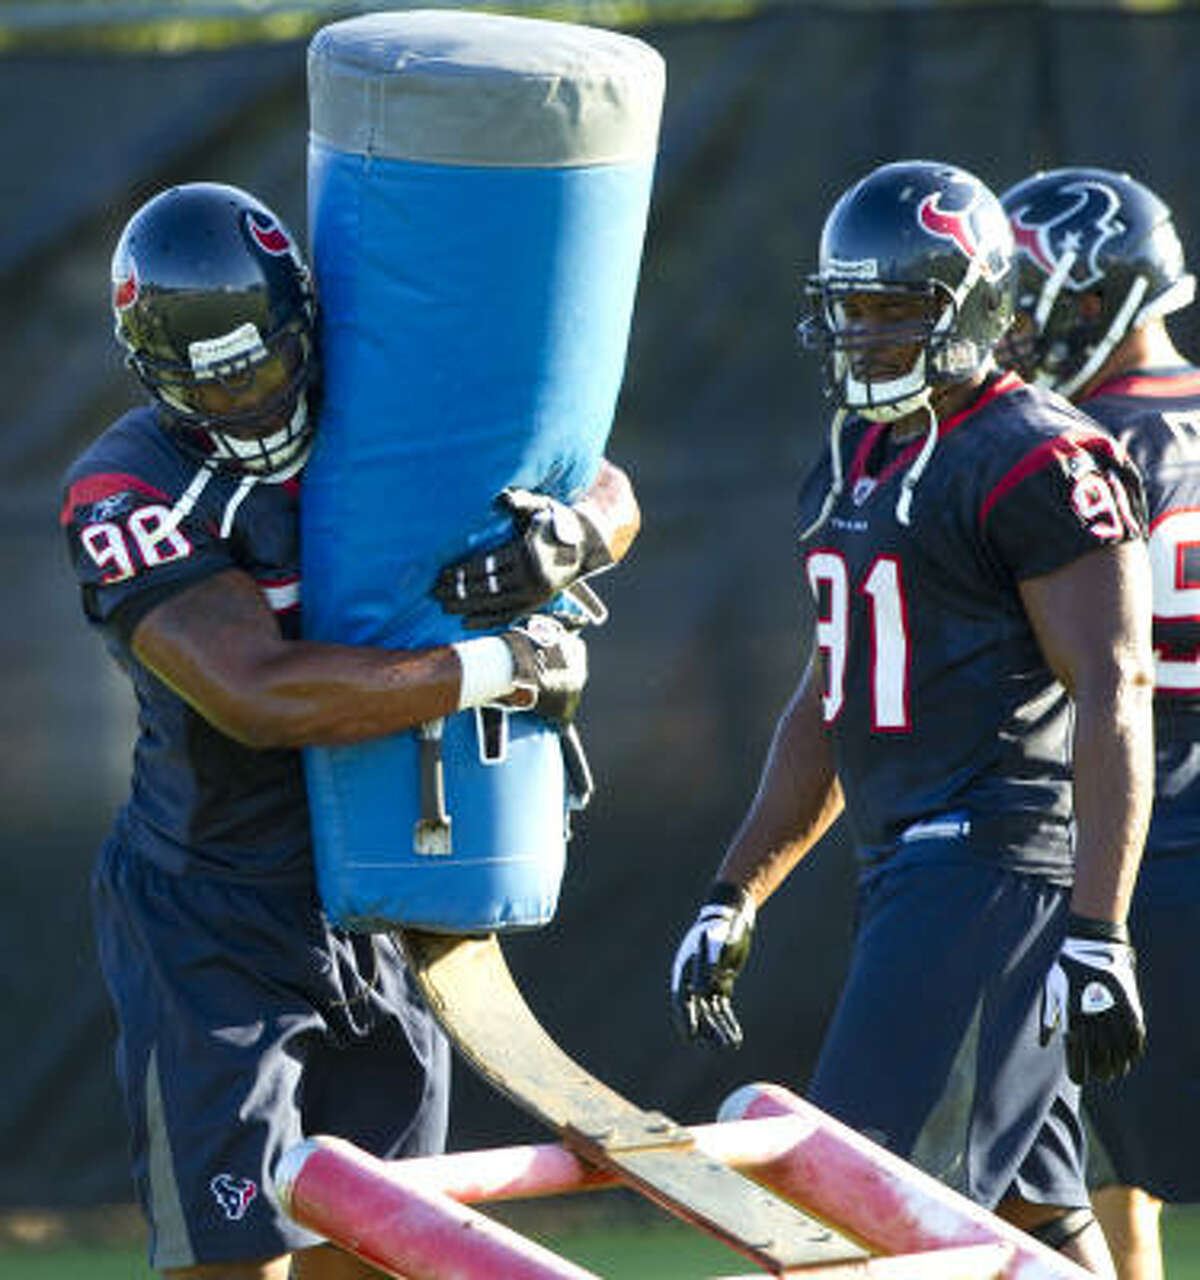 Texans defensive end Mario Williams (90) hits a blocking sled with Amobi Okoye (91) and Shaun Cody waiting for their turn.